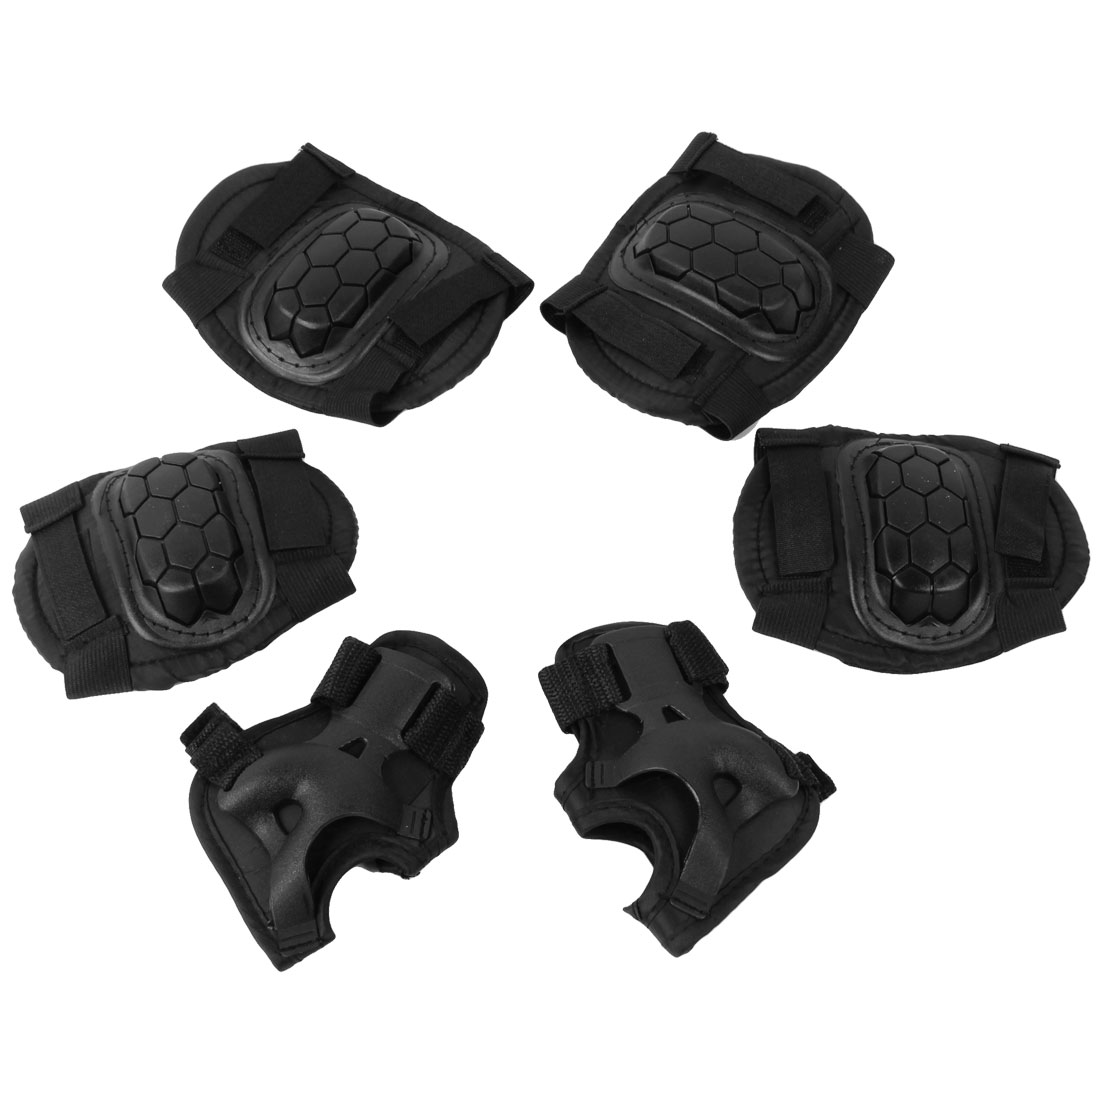 Black Skating Protective Elbow Knee Palm Support Pad Protector 3 Pairs for Kids